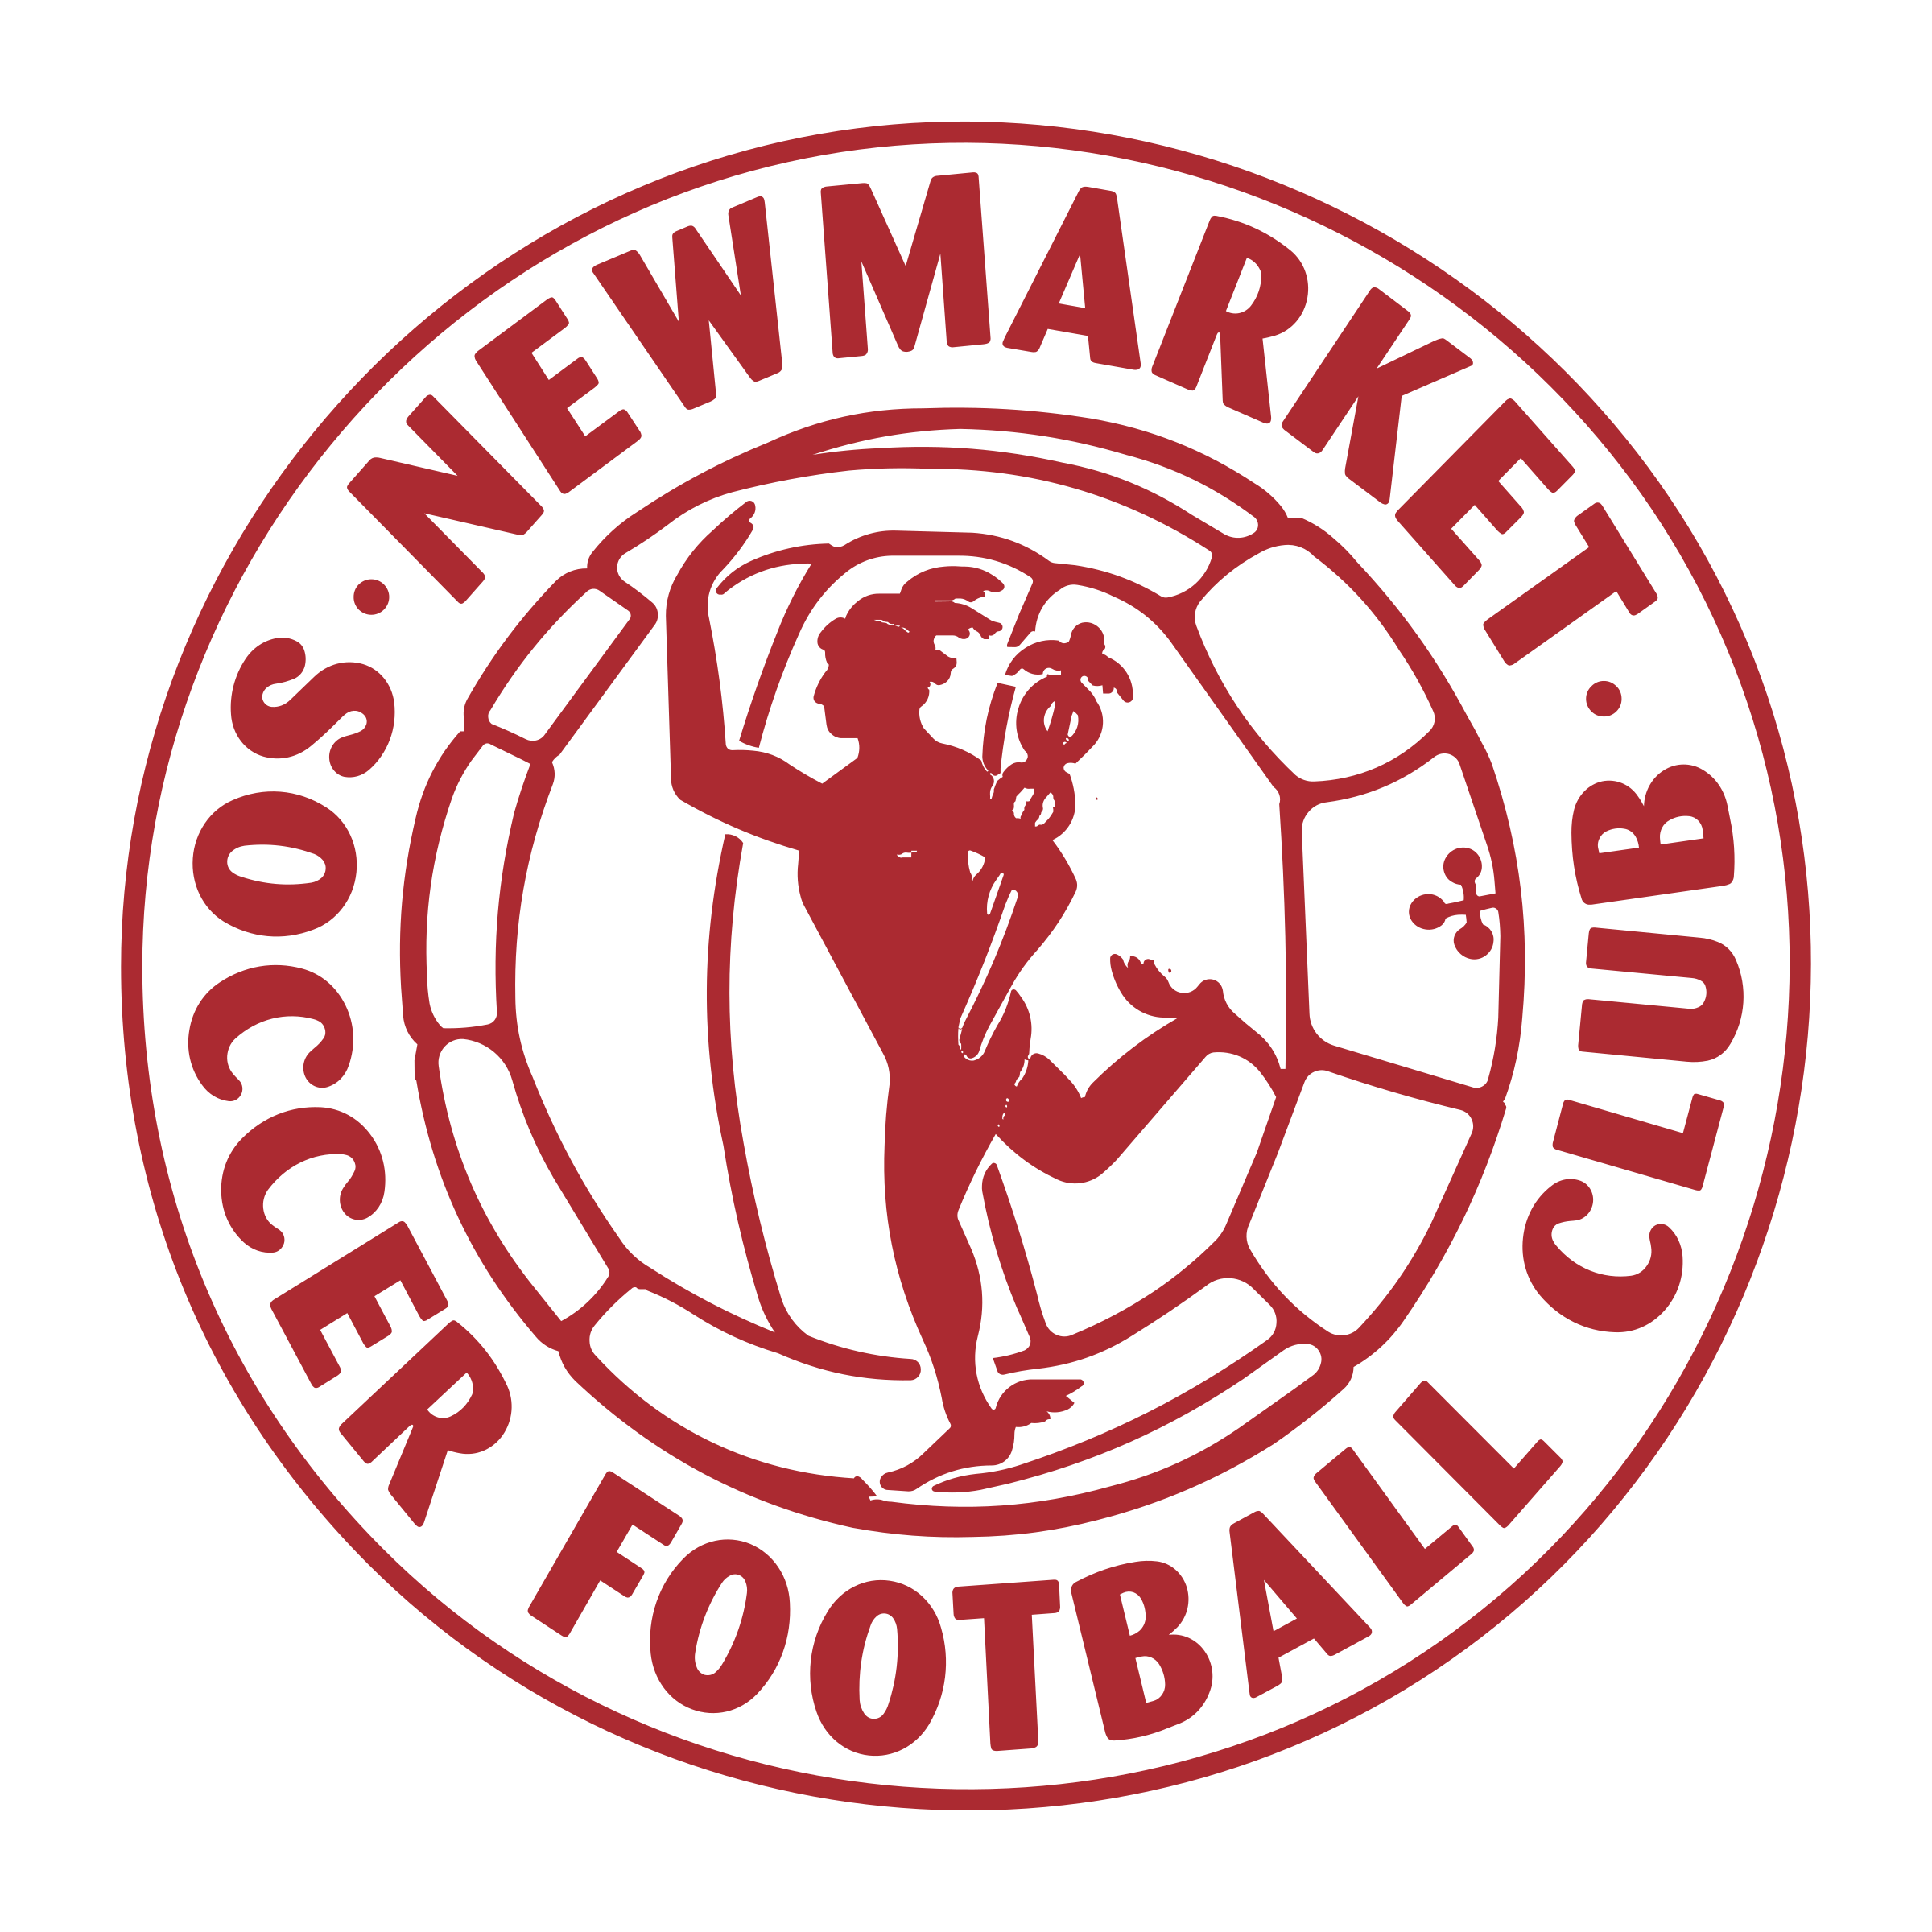 Newmarket Soccer Football Club Logo PNG Transparent & SVG